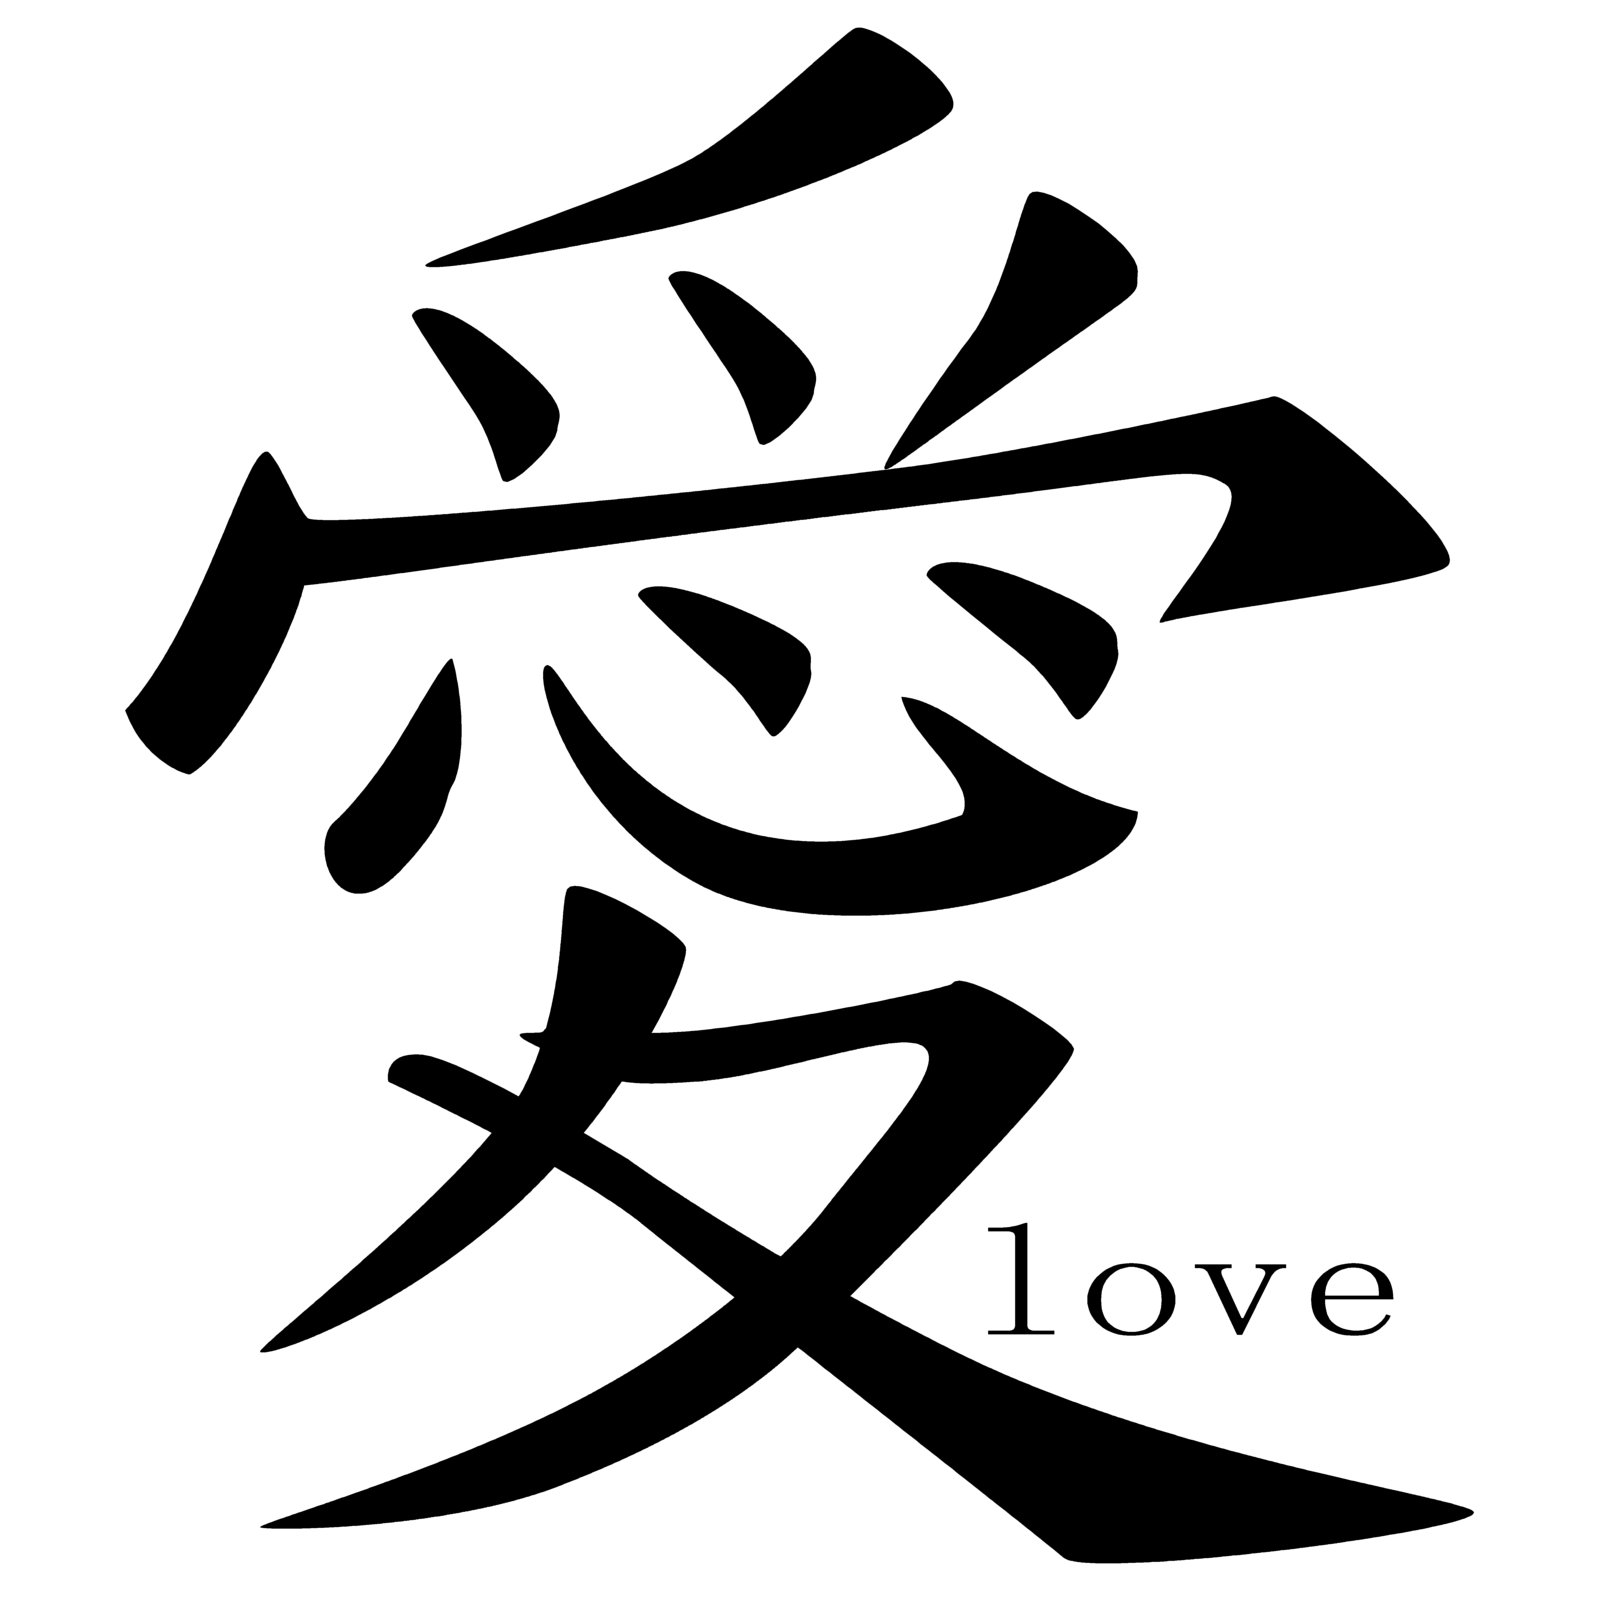 Chinese character love index of miscpixsv dayvalentinesday chinese character love index of miscpixsv dayvalentinesdaychinese buycottarizona Image collections